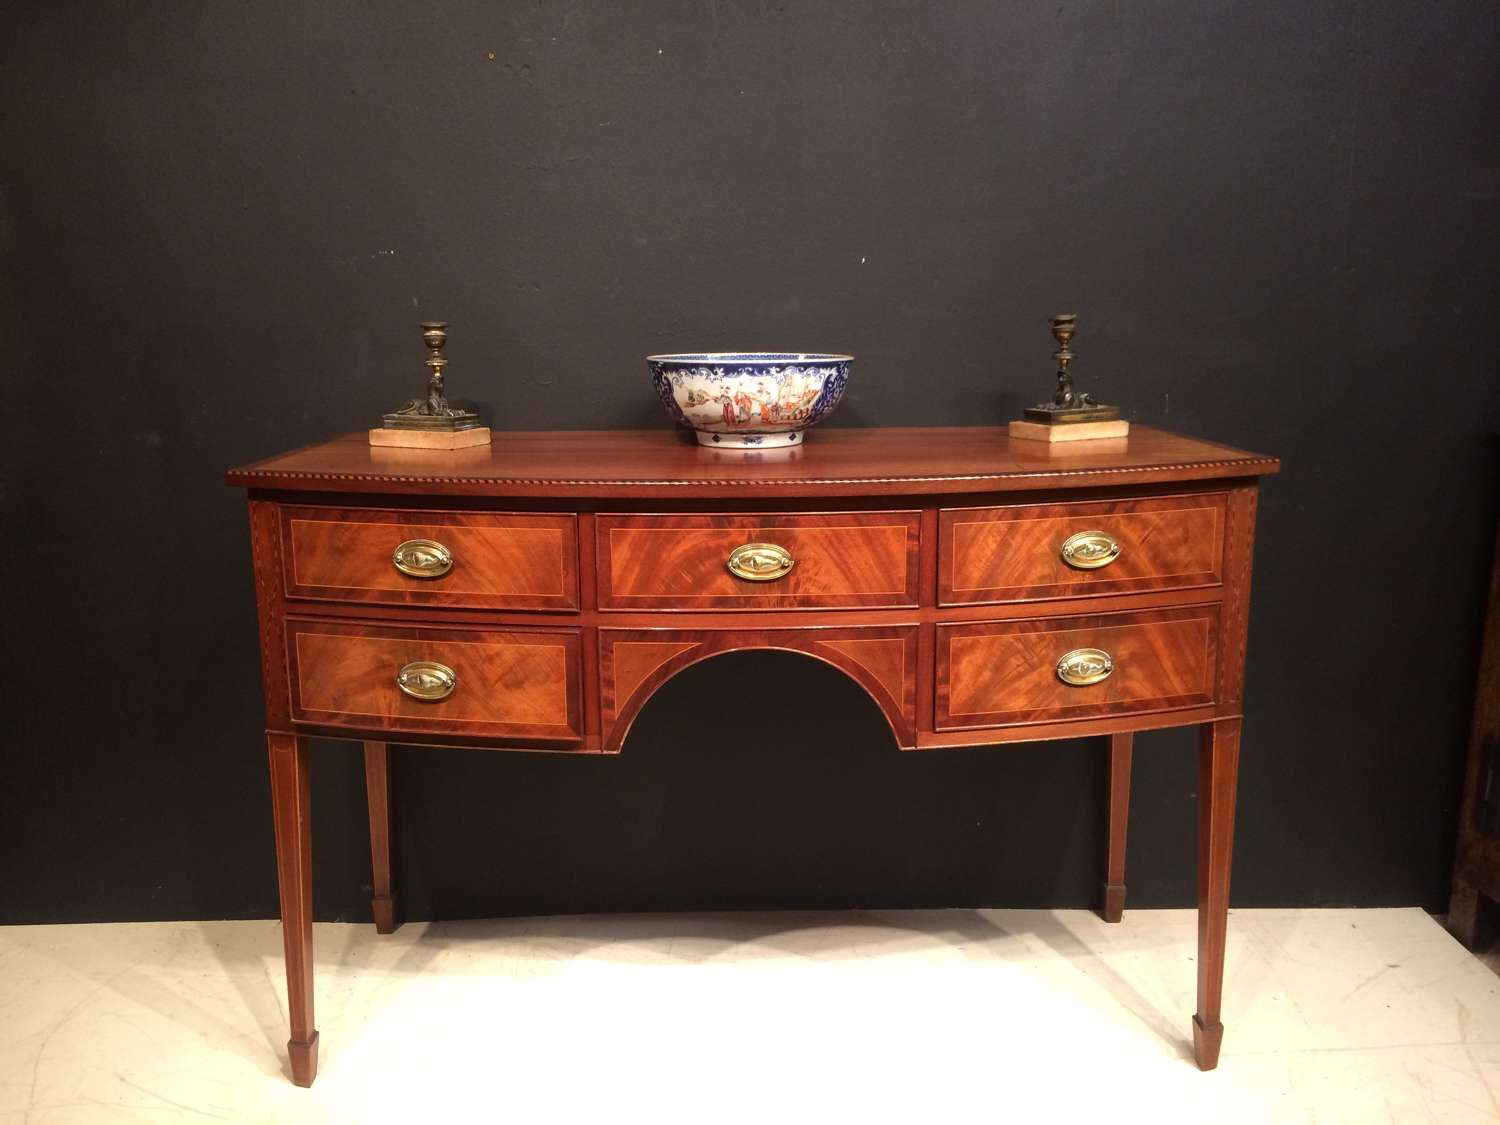 19th century mahogany bow fronted sideboard/dressing table.